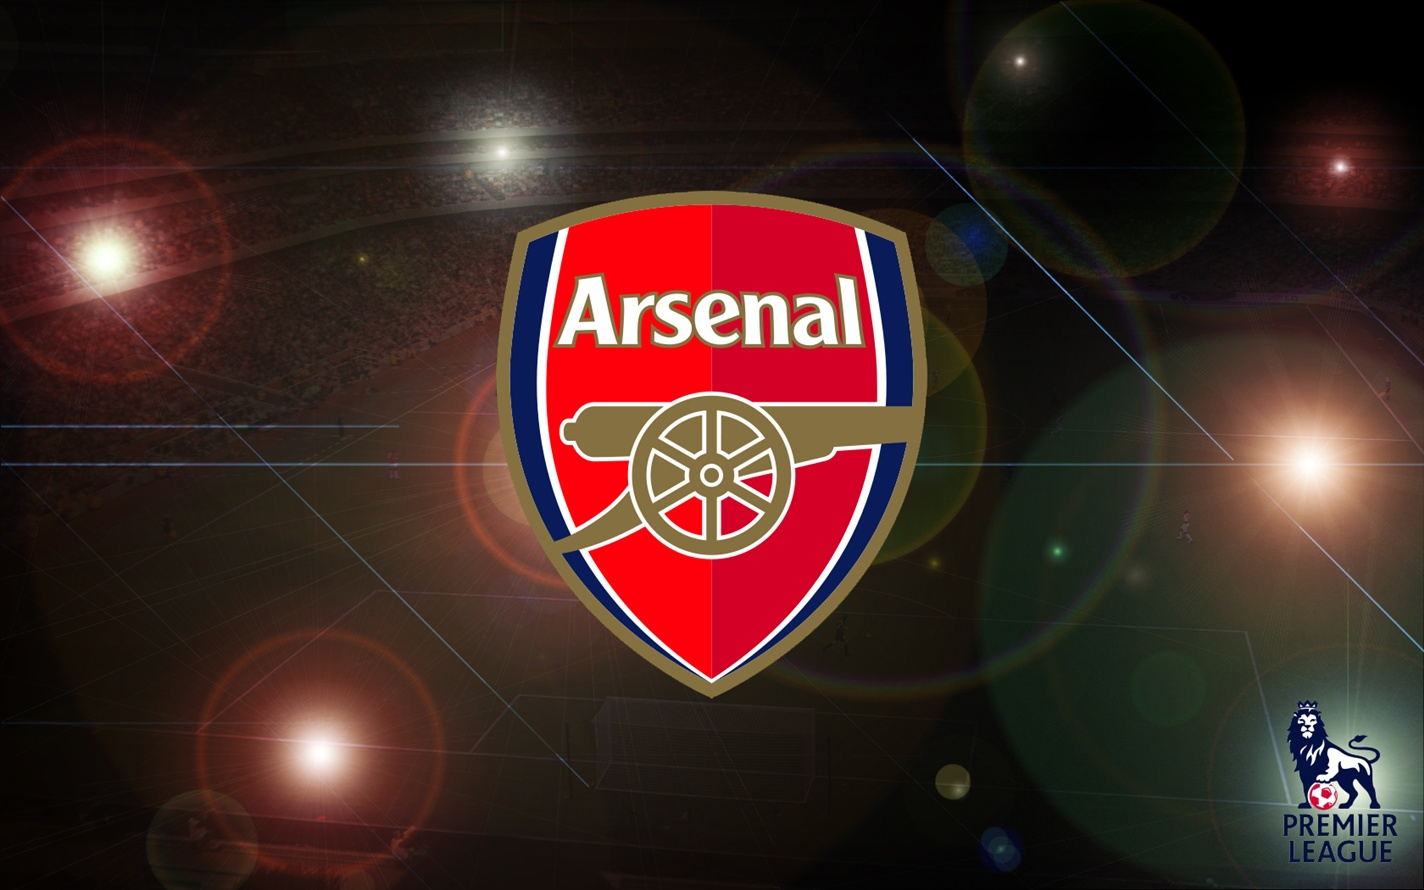 http://3.bp.blogspot.com/-K_XQ0DlyWf4/Tl0zLK6T5NI/AAAAAAAA3I8/3TO72wMemc4/s1600/Arsenal-Football-Club-Logo.jpg